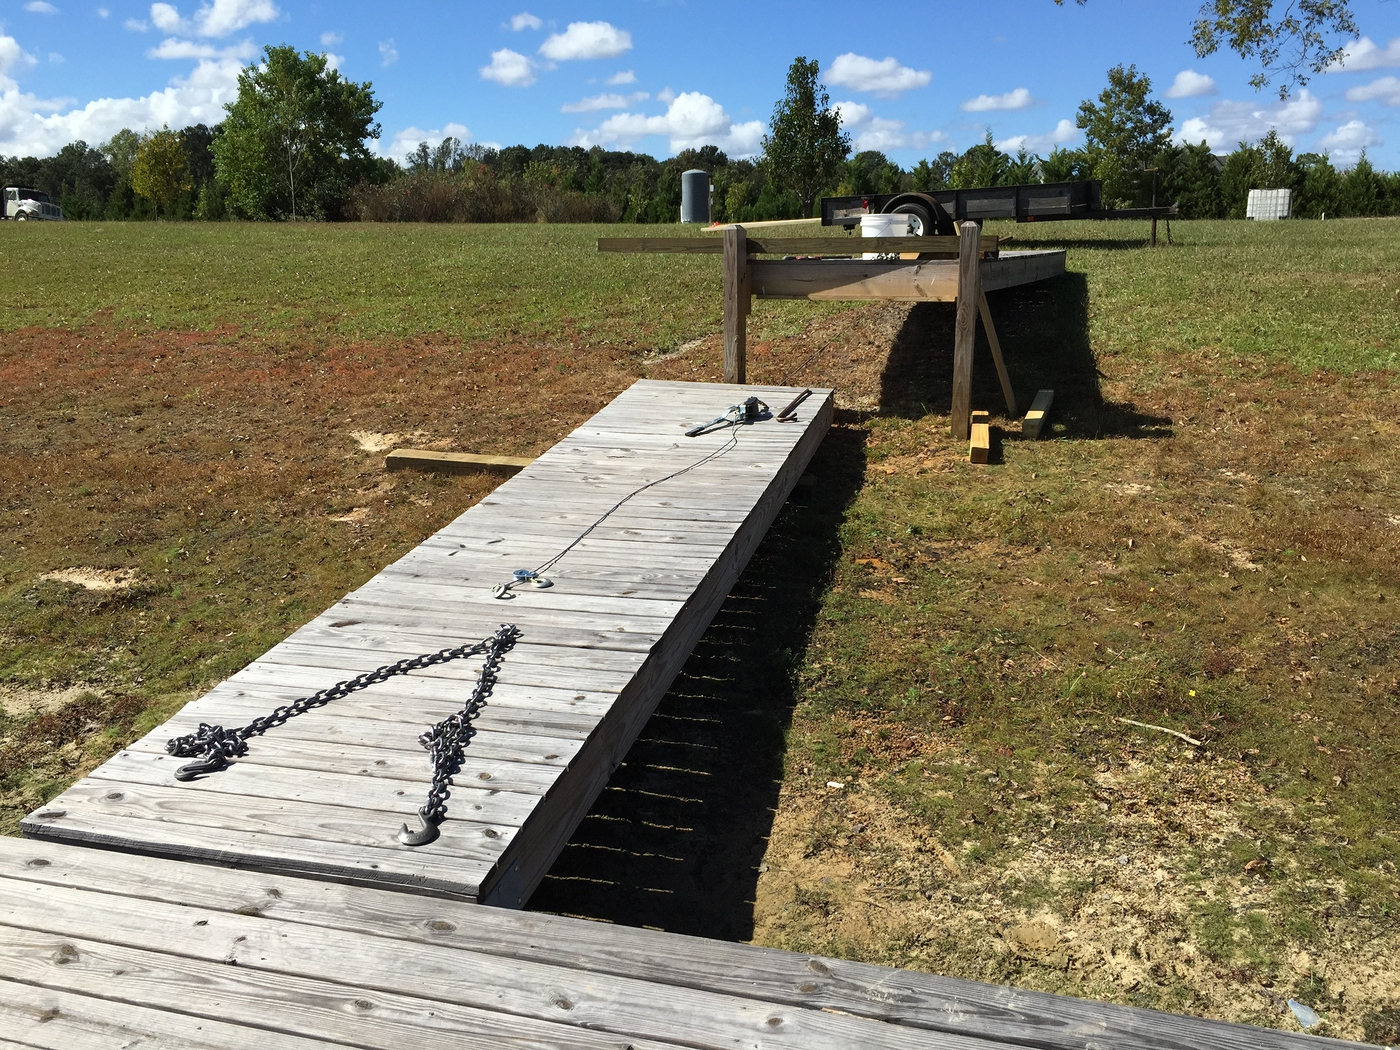 Floating Dock Build - Phase 2 | Property Projects